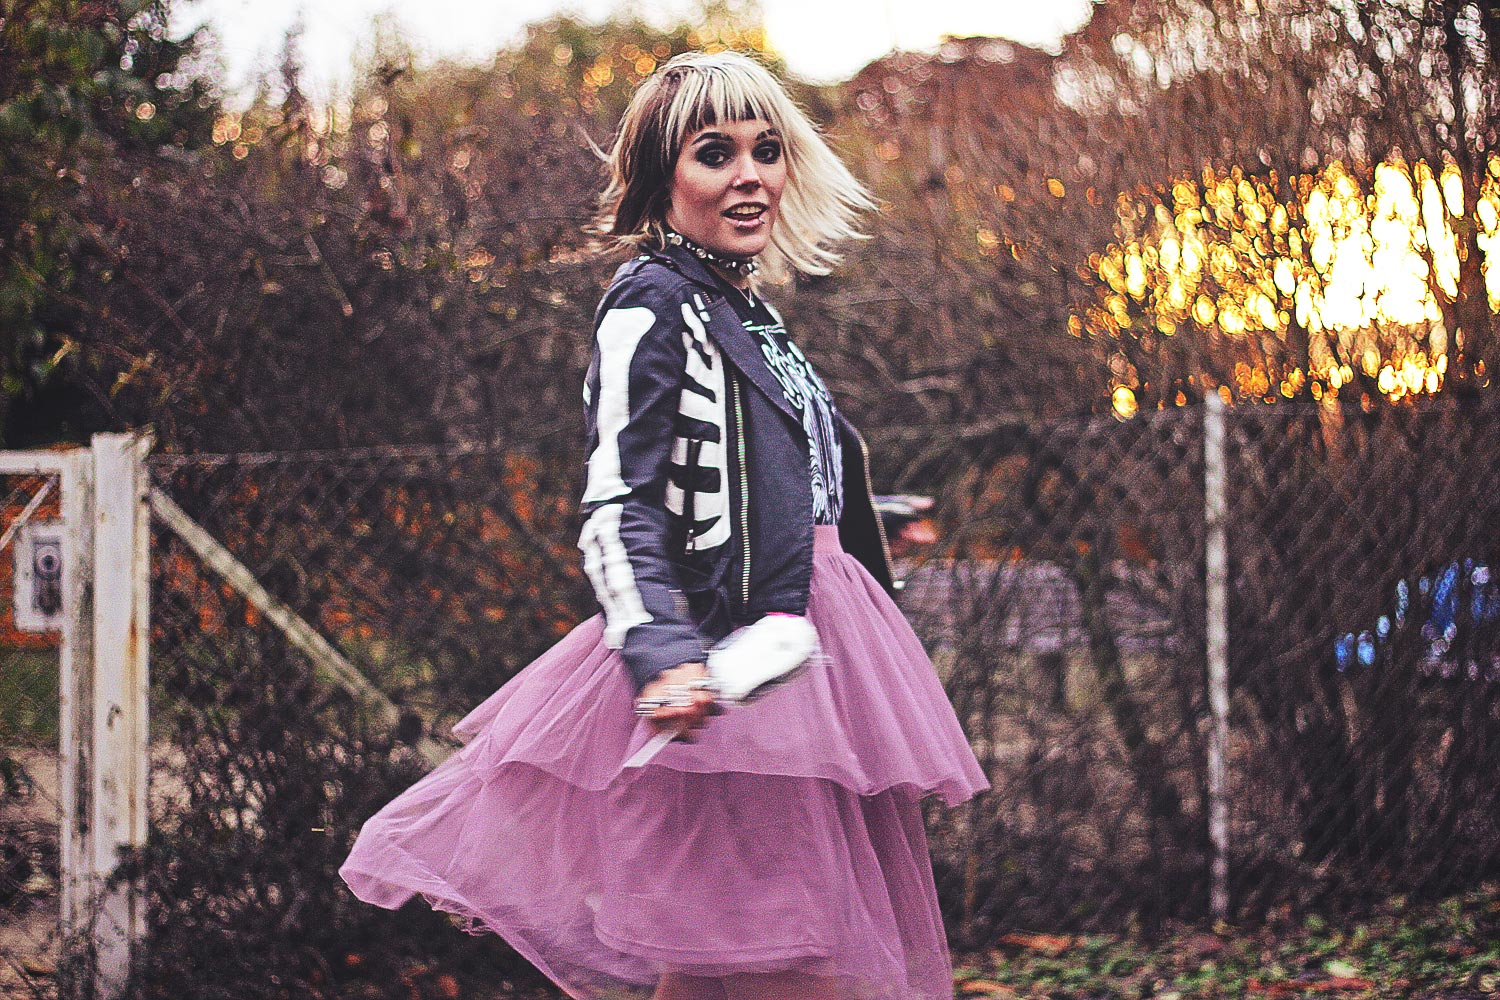 creeper, alternative, alternative fashion, alternative girl, alternative mode, altgirl, berlin, berlin fashion, berlin fashion blogger, berlin mode, berlin streetstyle, blogger, fashion blogger, girls with piercings, girls with tattoos, grunge, grunge fashion, grunge mode, mode, Punk, punk fashion, punk mode, punkgirl, punkmädchen, scenehair, snakebites, split hair, splithair, tattoomädchen, tattoo model, band, band shirt, unif, asos, rock, tüllrock, boohoo, lagen, lederjacke, skelett, boneyard moto, mehrlagig, trench boot, geist, ghost, tk maxi, halloween, creep, killstar, crystal choker, crystal, choker